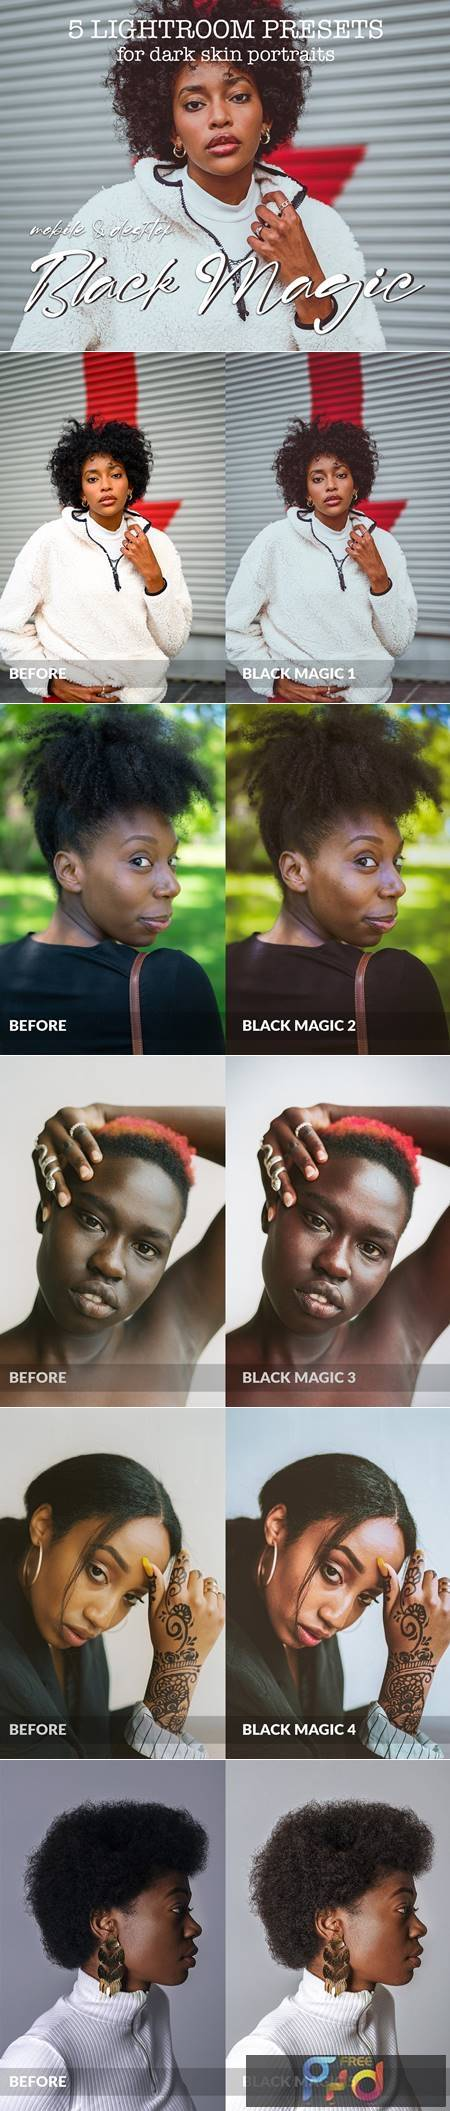 5 Dark Skin Lightroom Presets 5361772 1